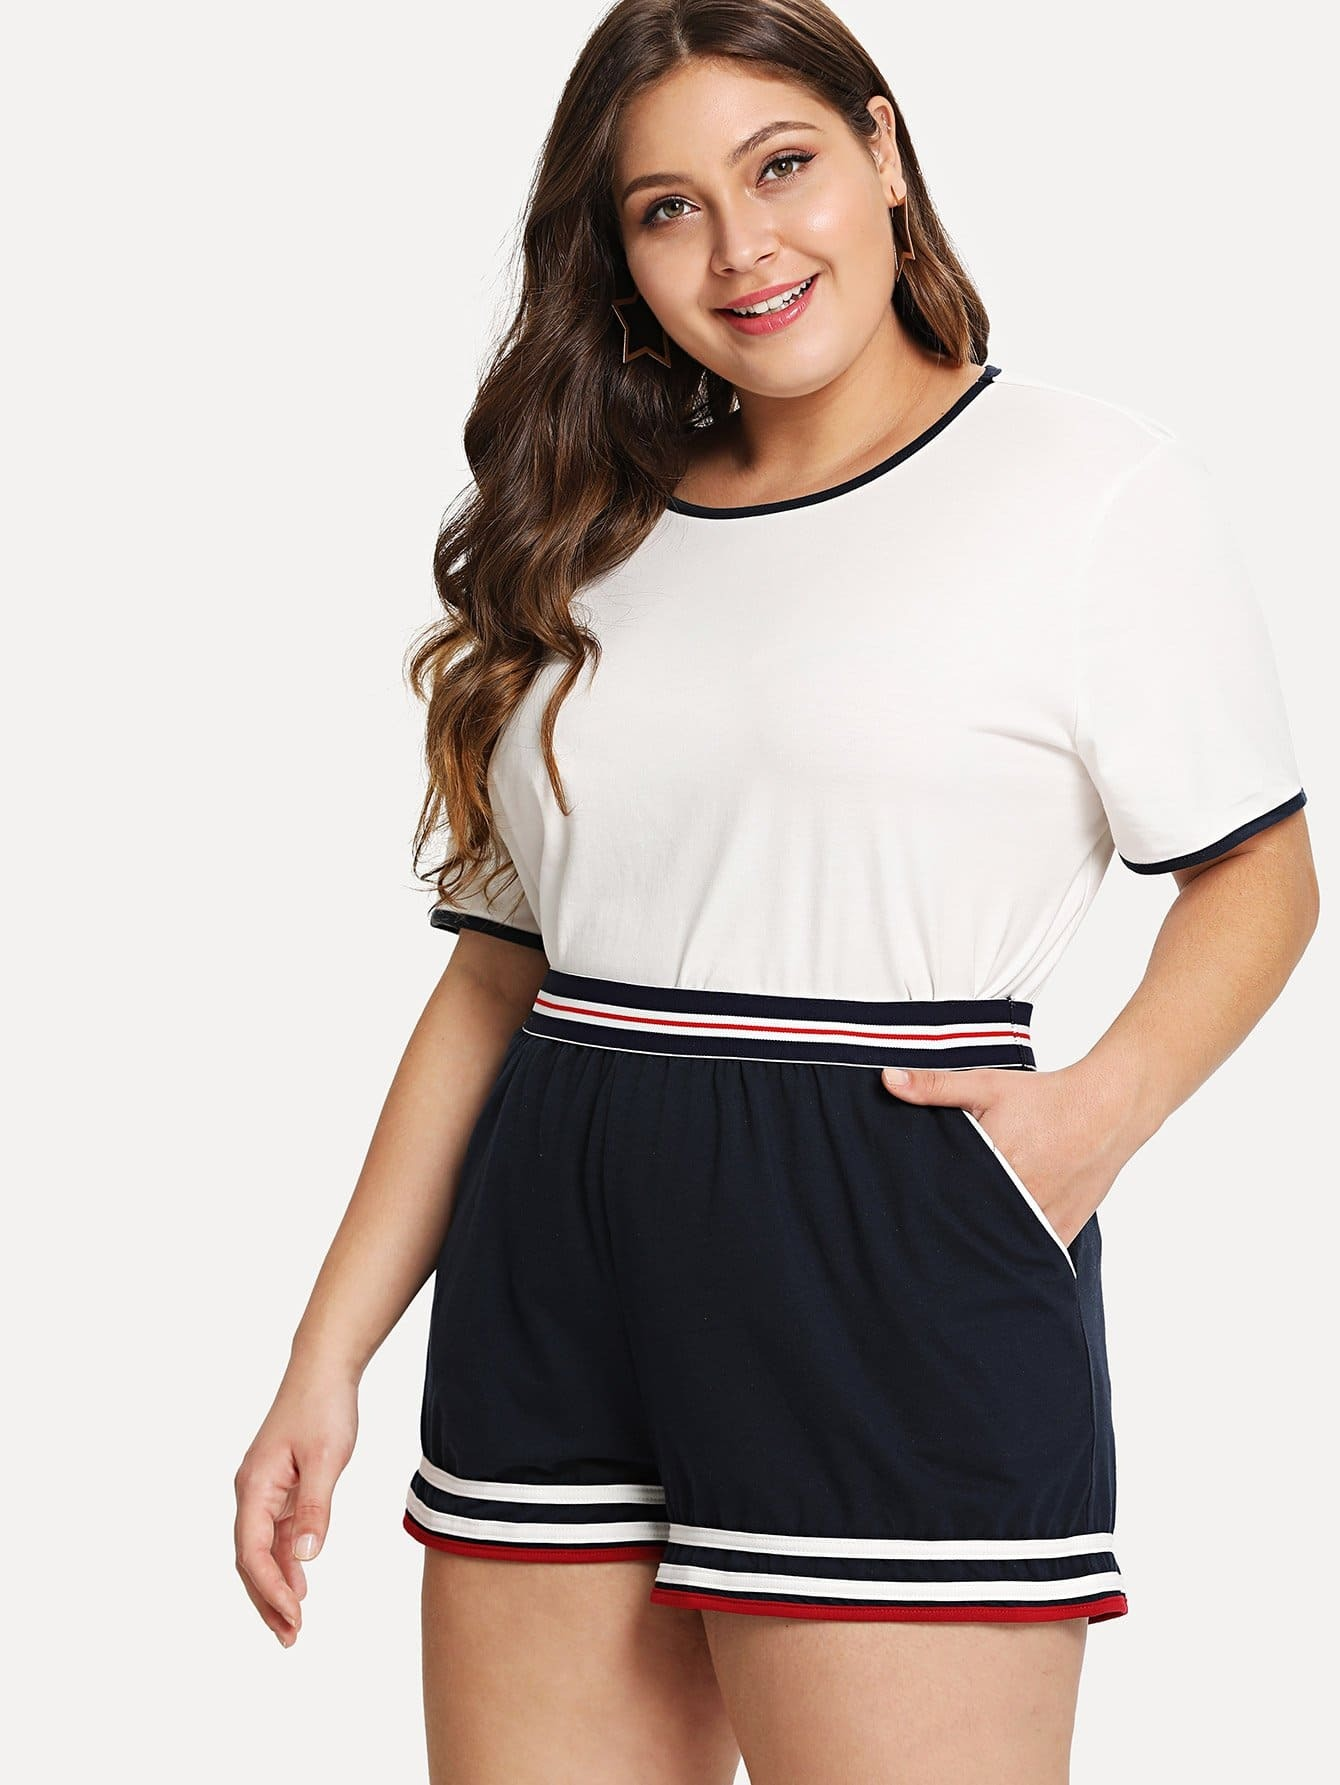 Ringer Tee With Striped Trim Shorts lace trim tee with shorts